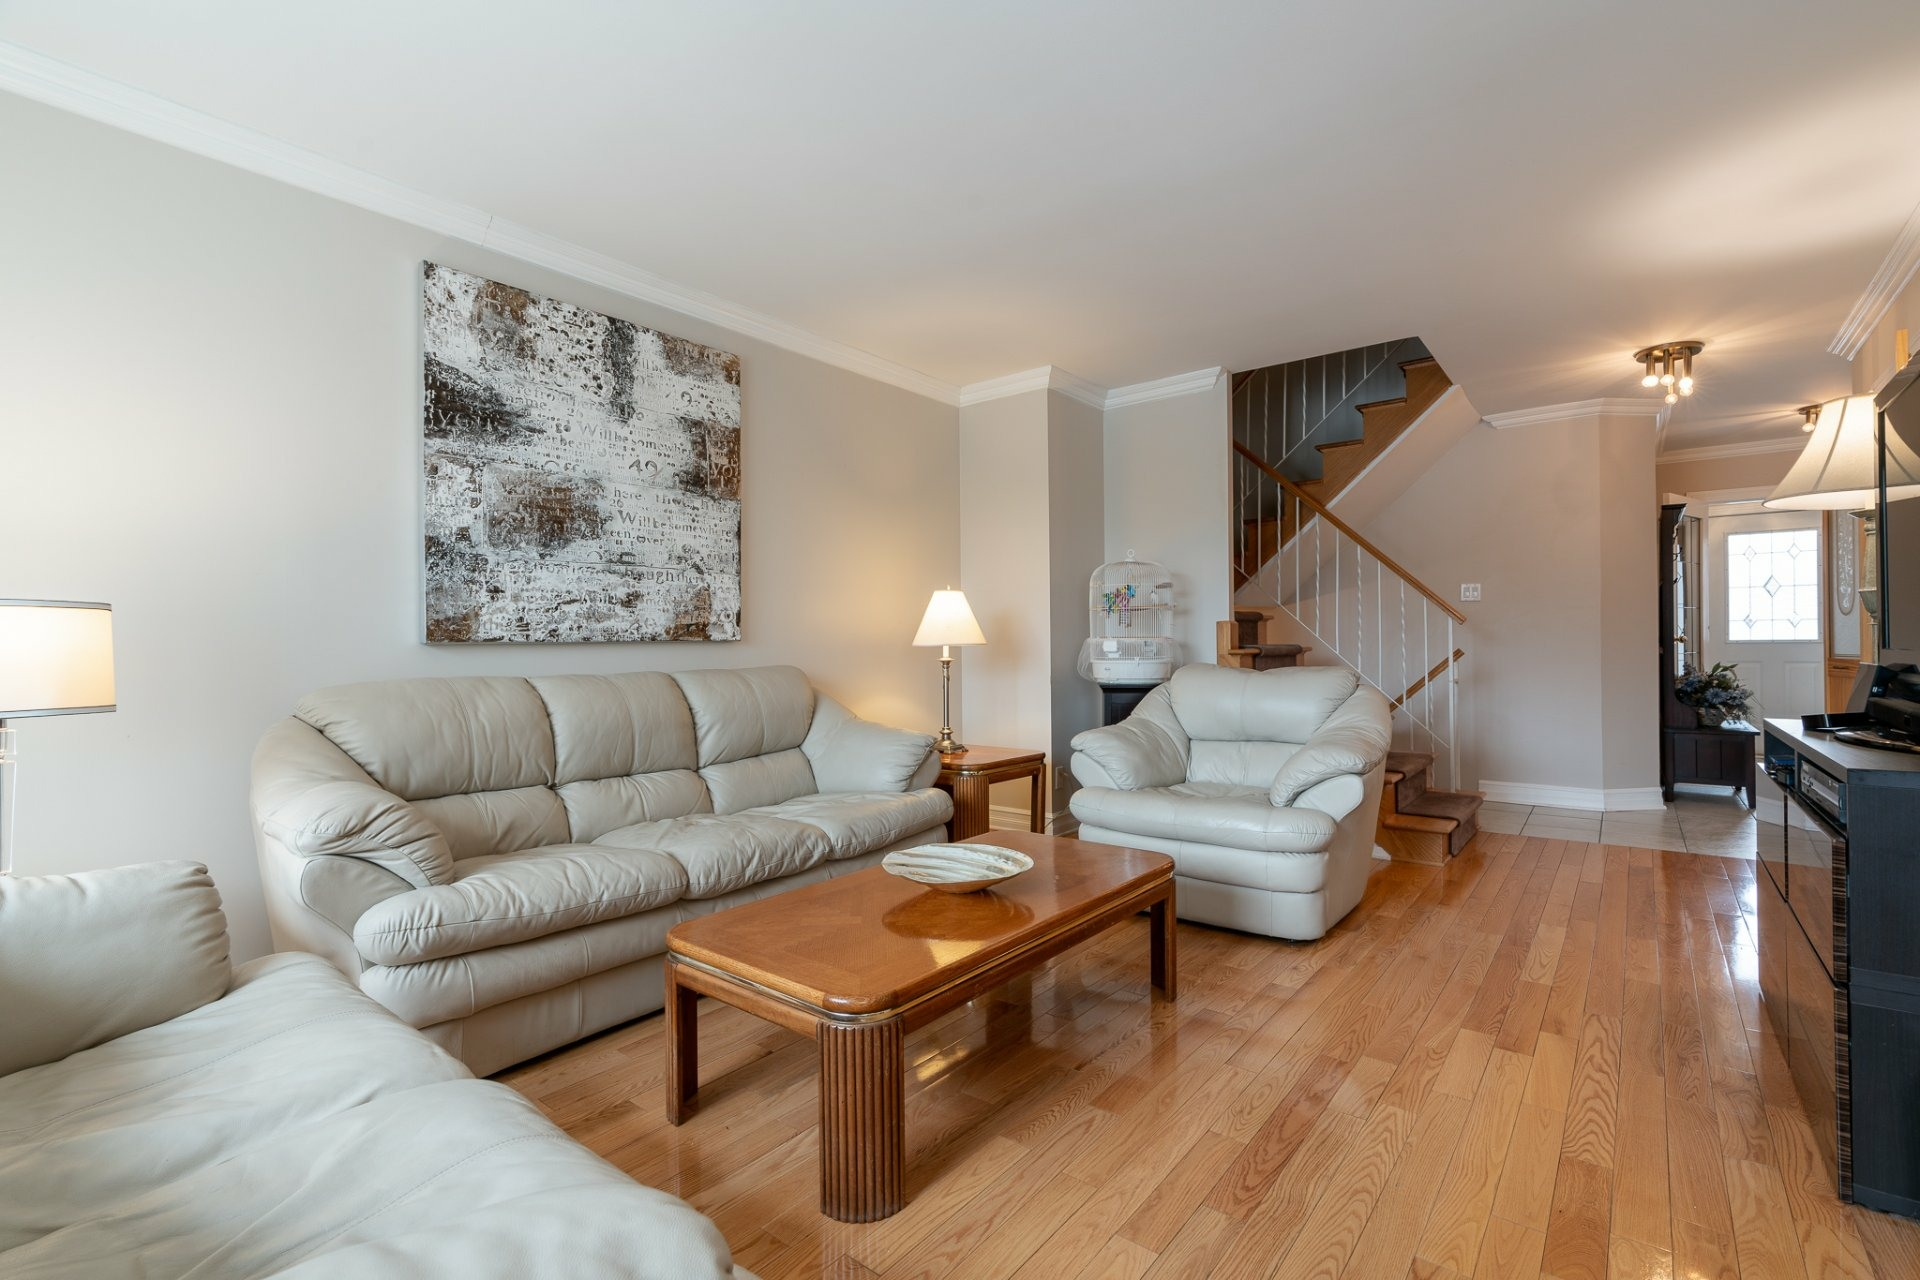 image 7 - House For sale Pointe-Claire - 8 rooms